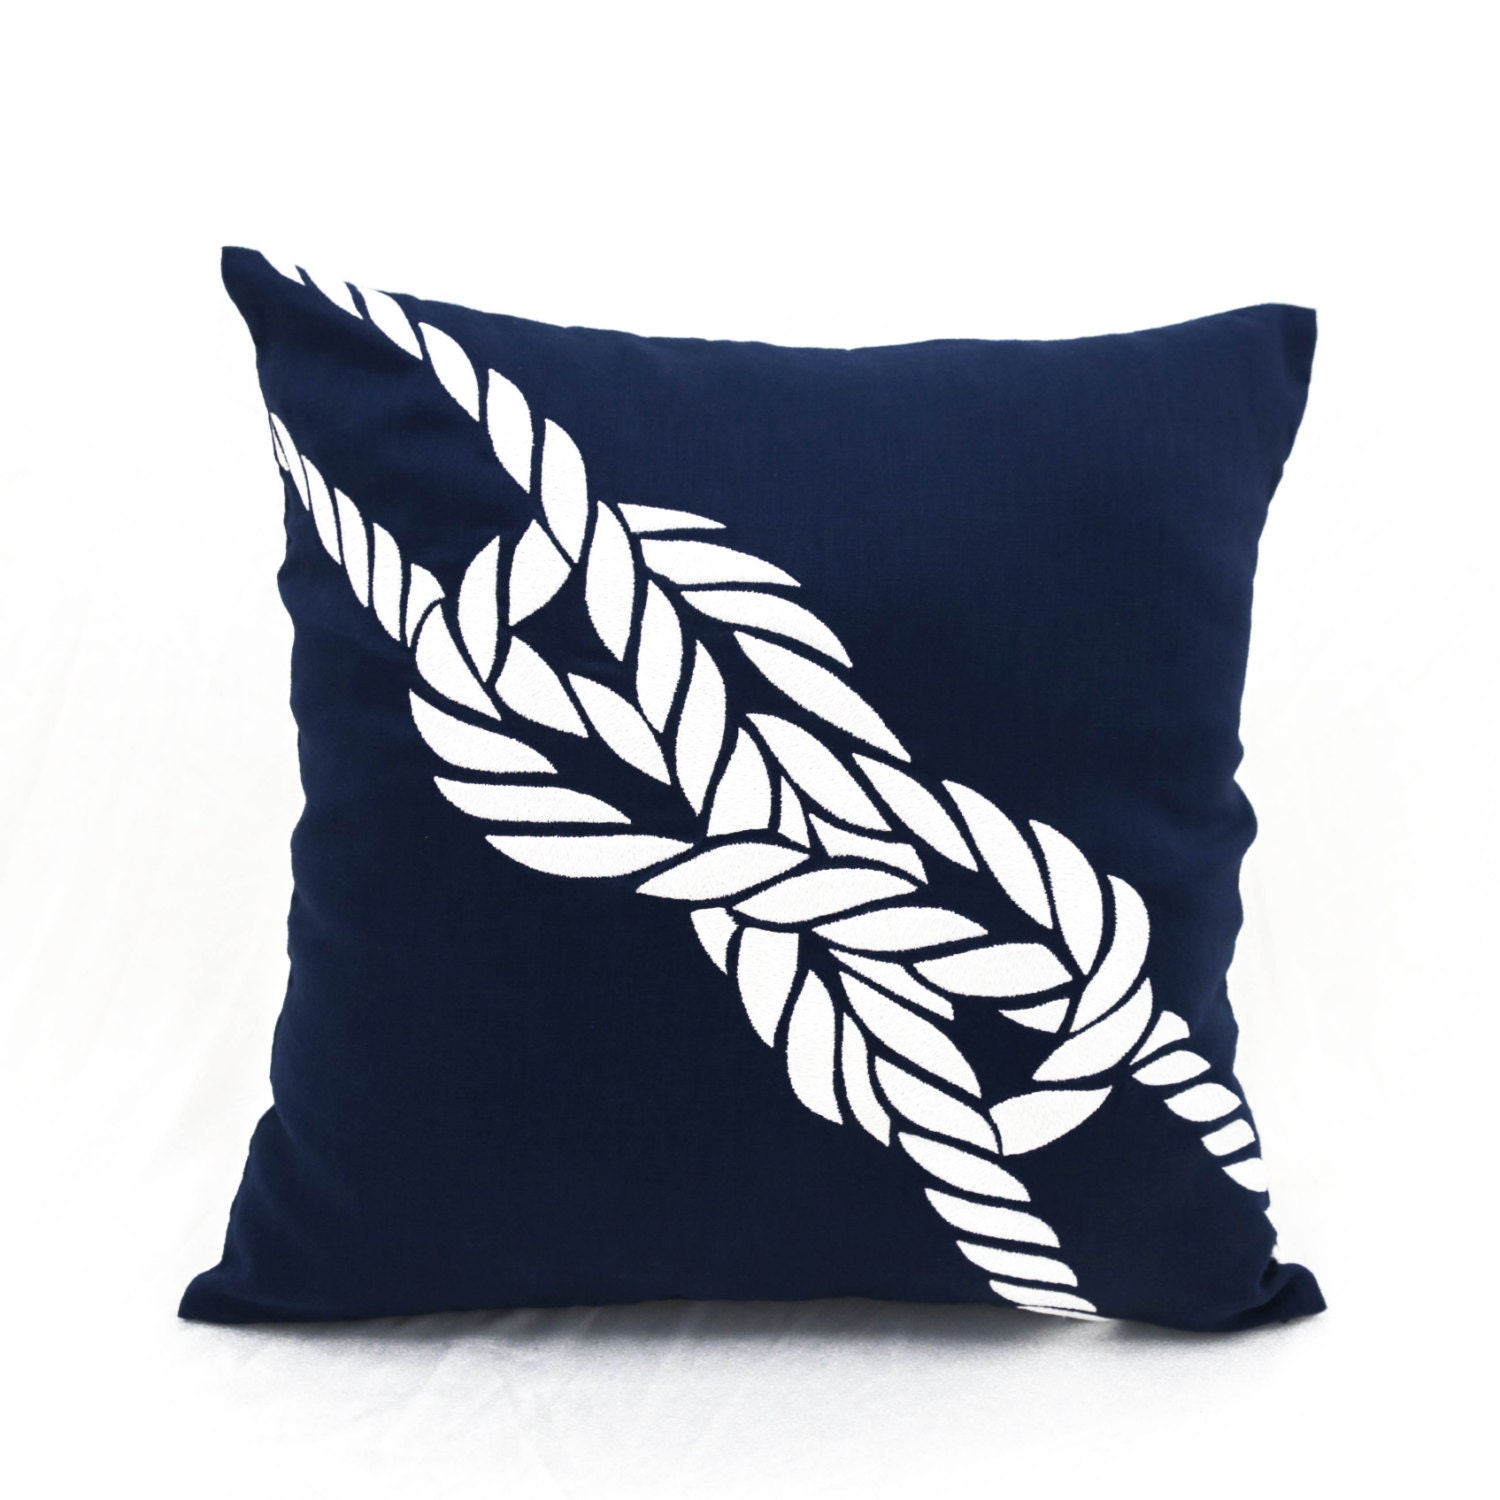 Navy Throw pillow Rope Pillow Nautical pillow covers